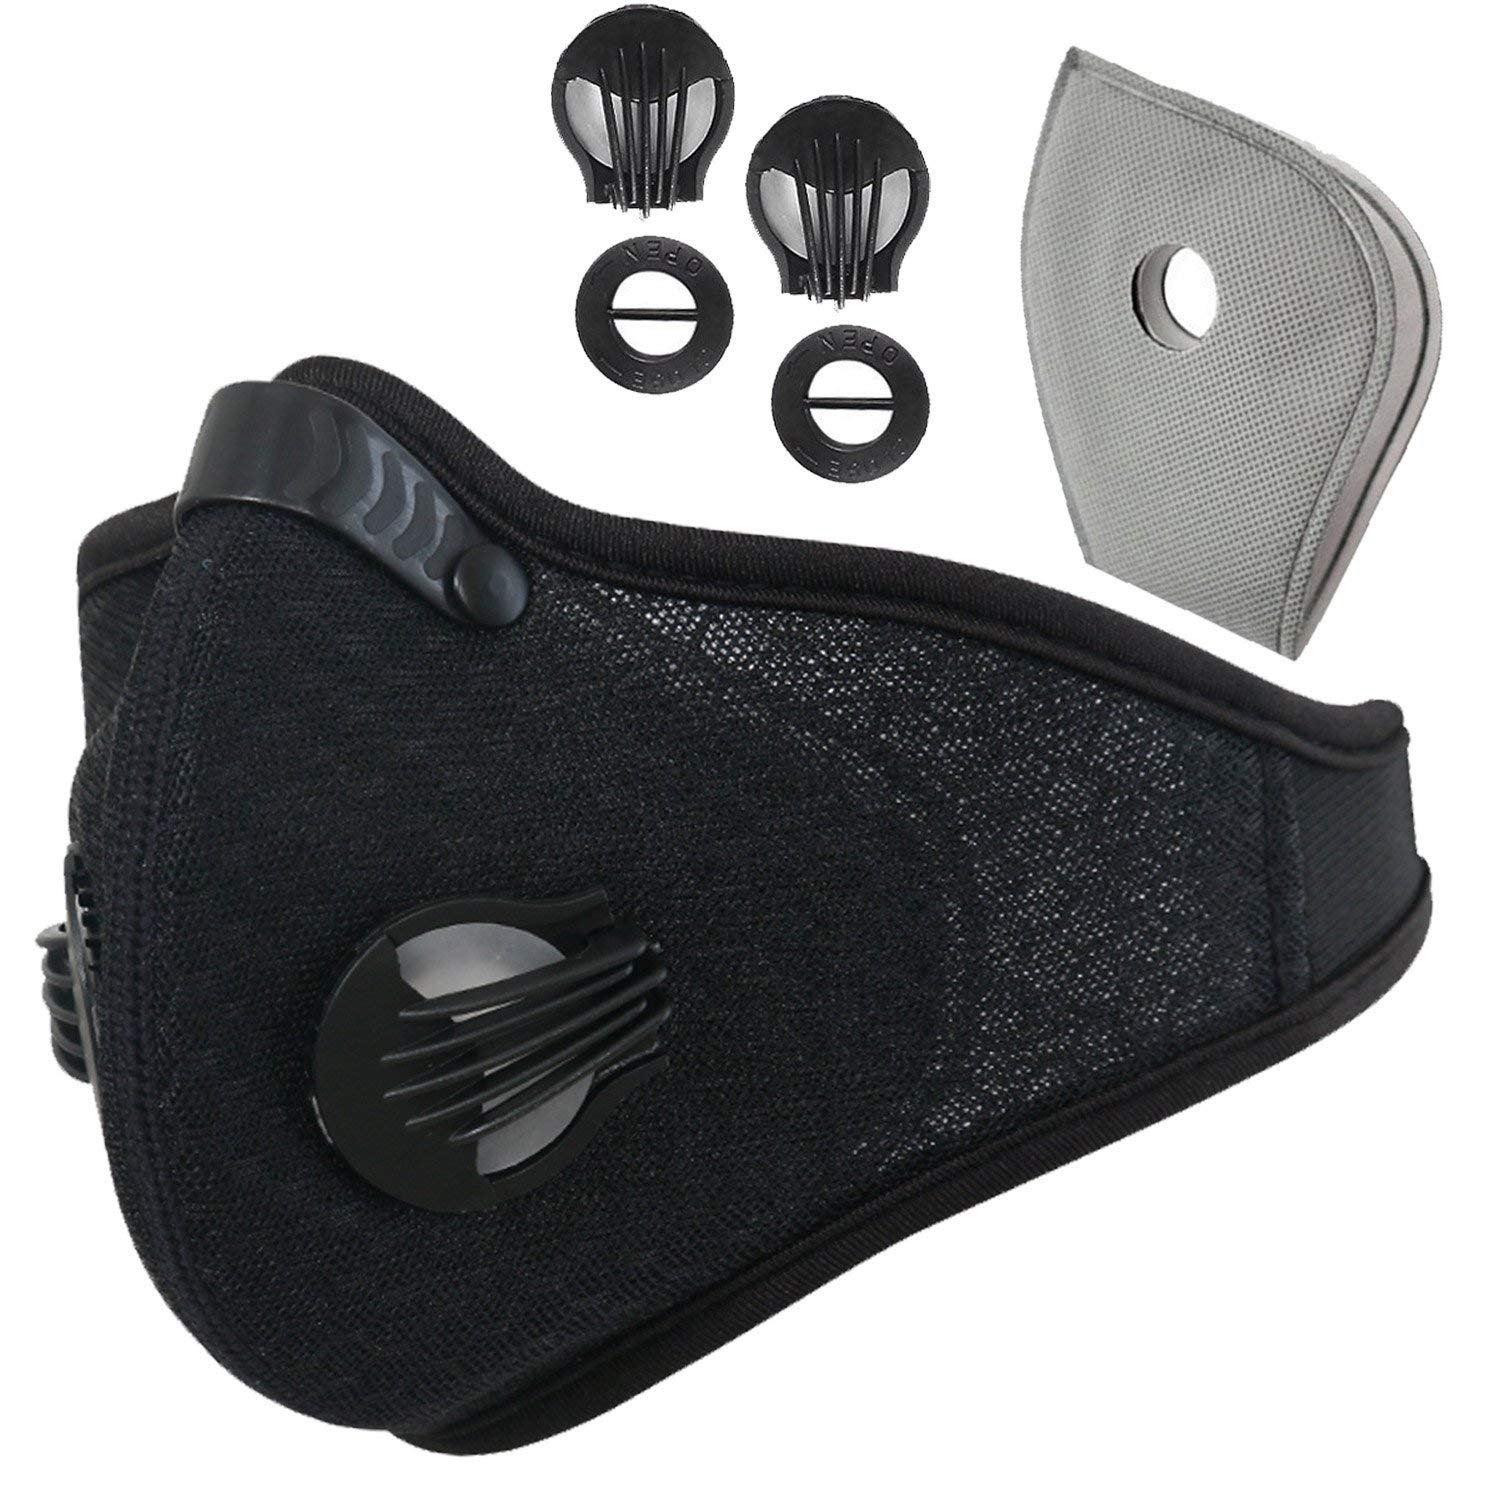 hzqs Dustproof Mask - Activated Carbon Dust Proof Pollution Respirator Filter Filtration Cotton Sheet Valves Exhaust Gas, Pollen Allergy, PM2.5, Running, Cycling,Outdoor Activities